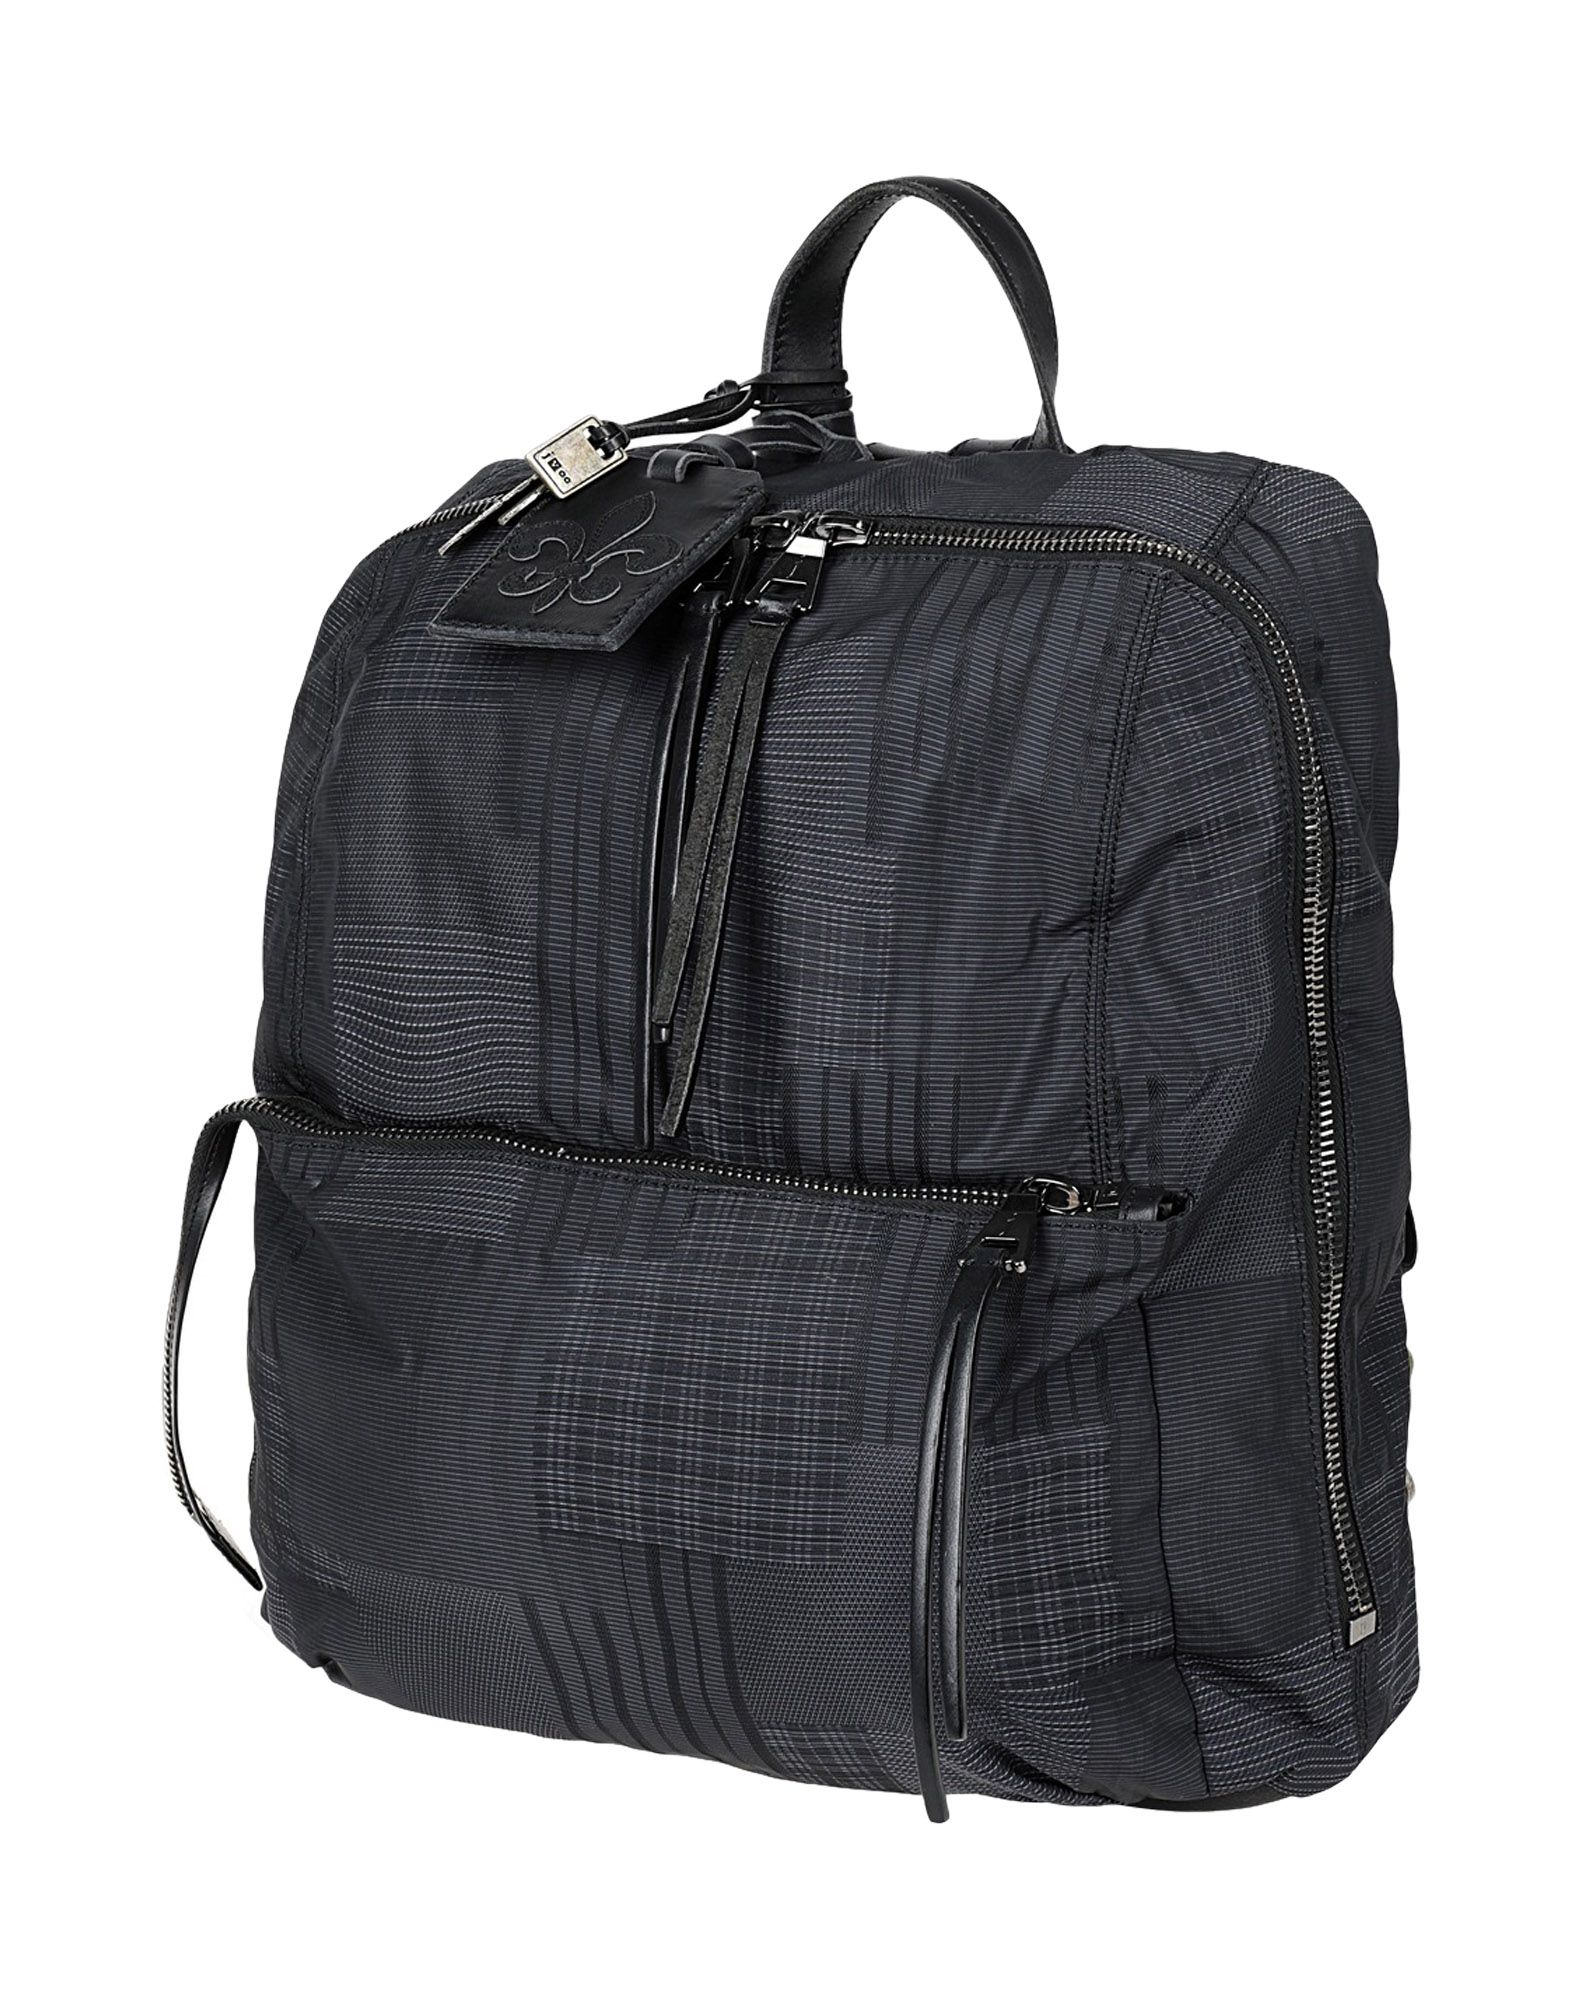 JOHN VARVATOS | JOHN VARVATOS Backpacks & Fanny packs 45421688 | Goxip